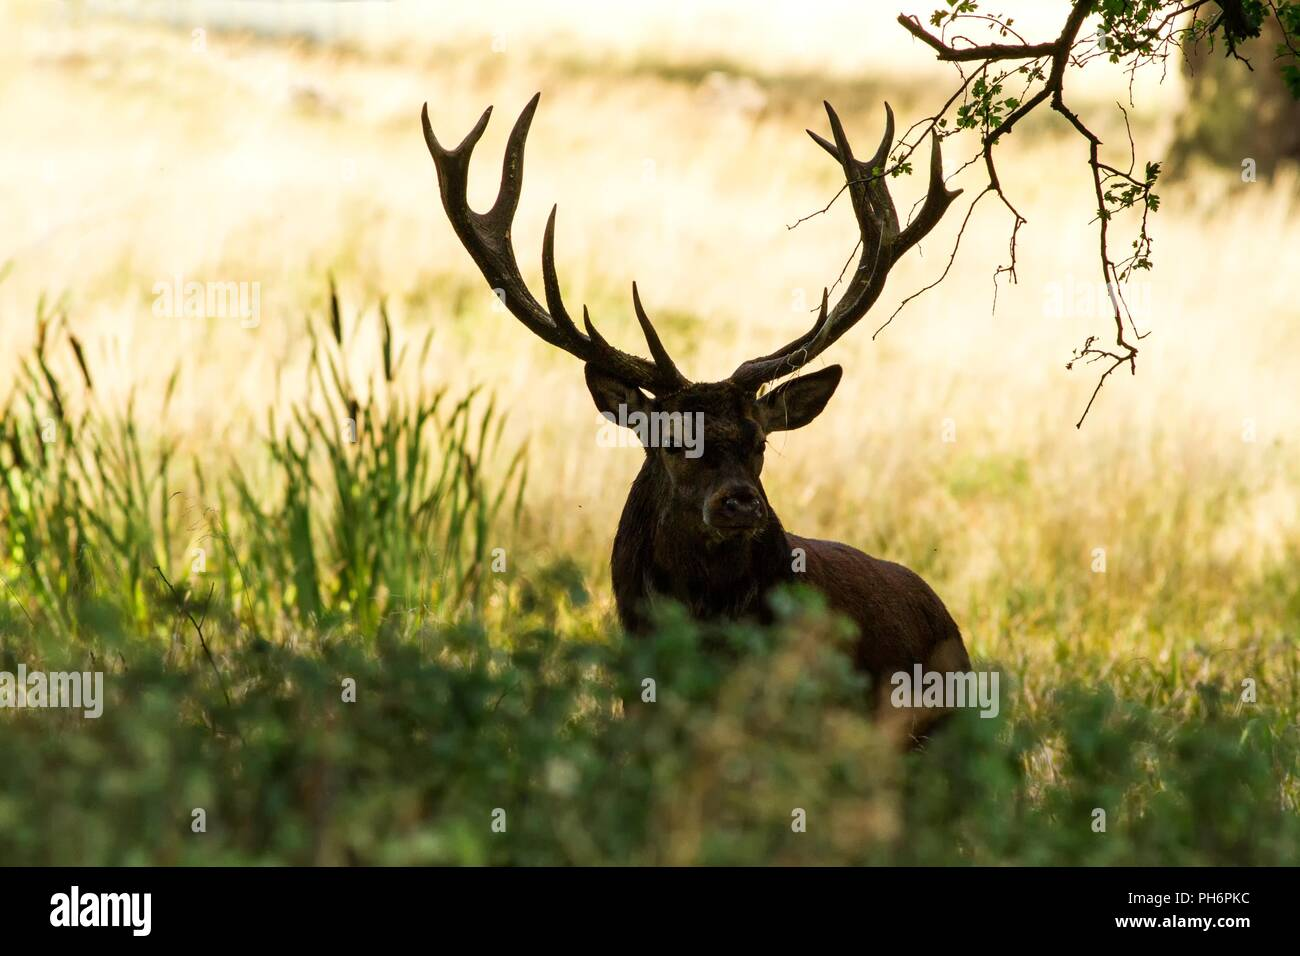 Majestic powerful adult red deer stag outside autumn forest in Dyrehaven, Denmark. Mating season, deer in natural forest habitat, big beautiful animal - Stock Image